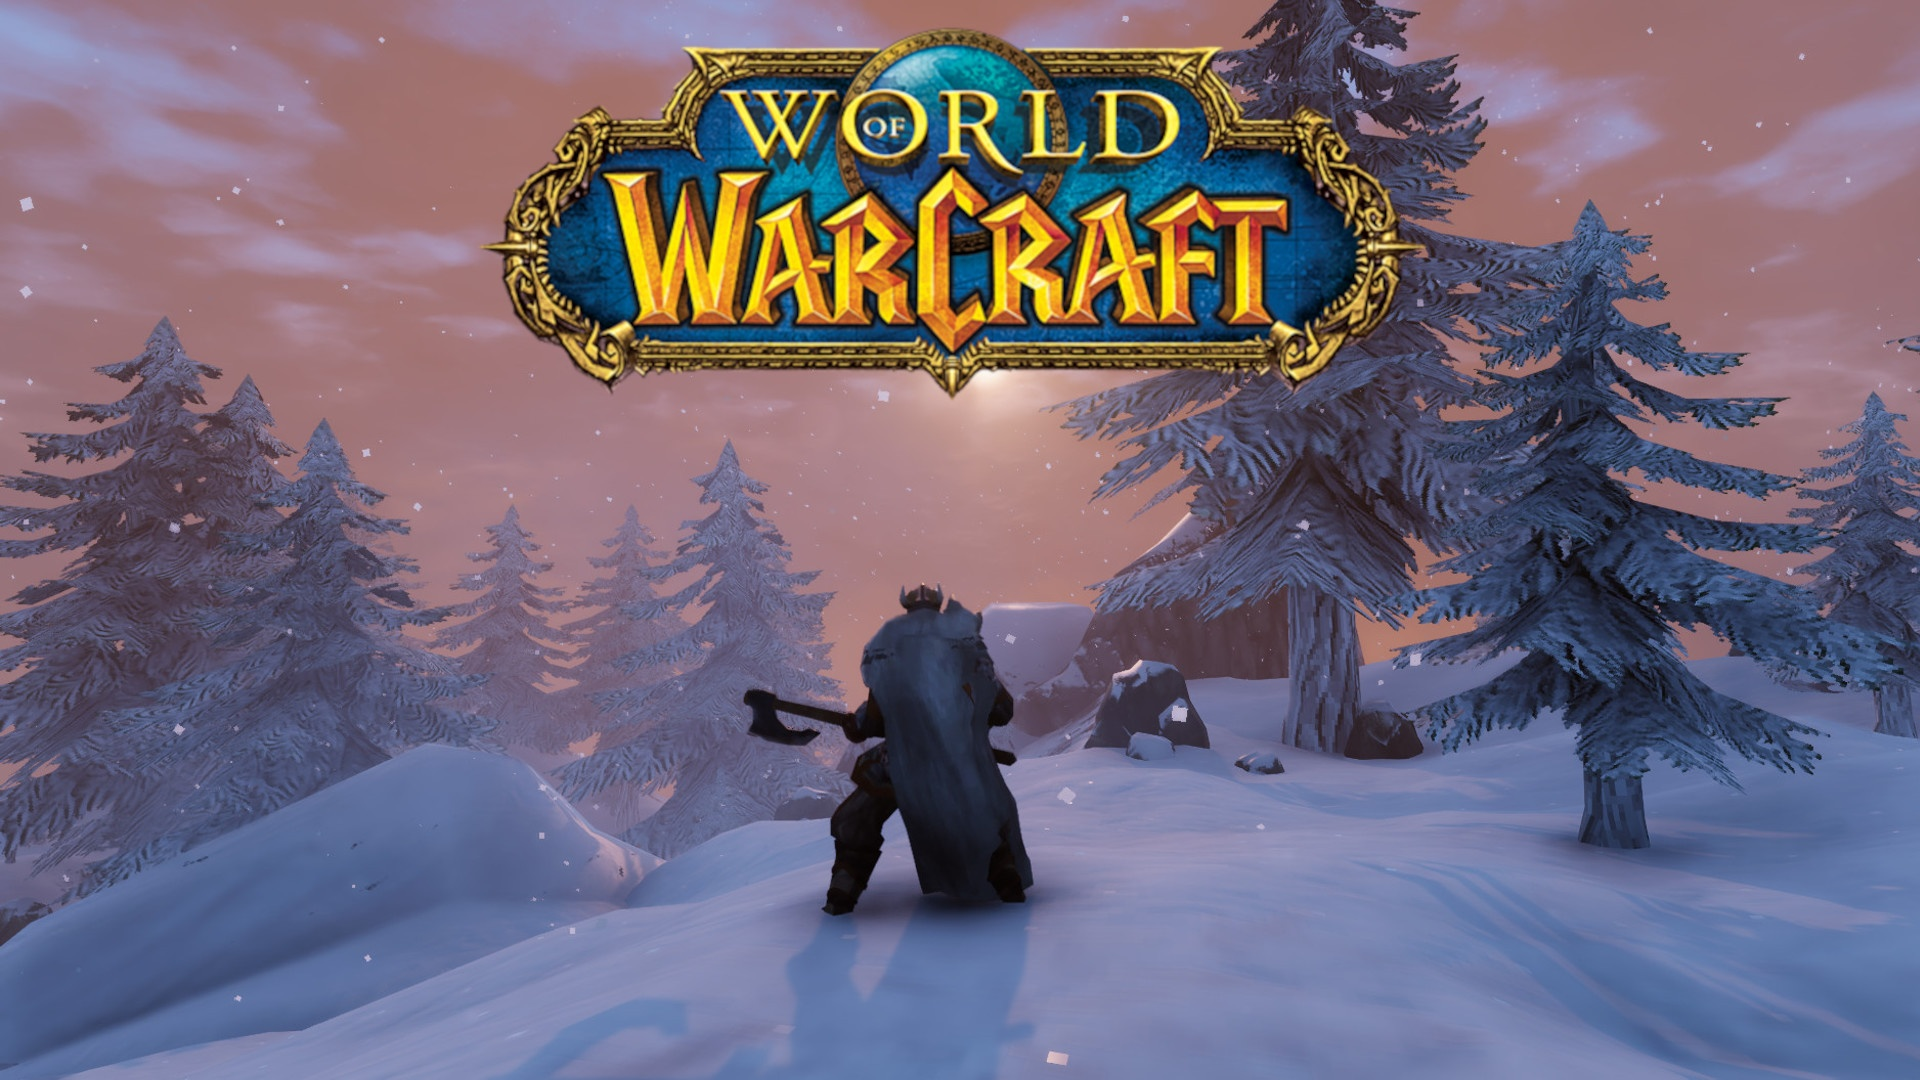 Azeroth in Valheim: Mod lets you explore the WoW world in the survival game